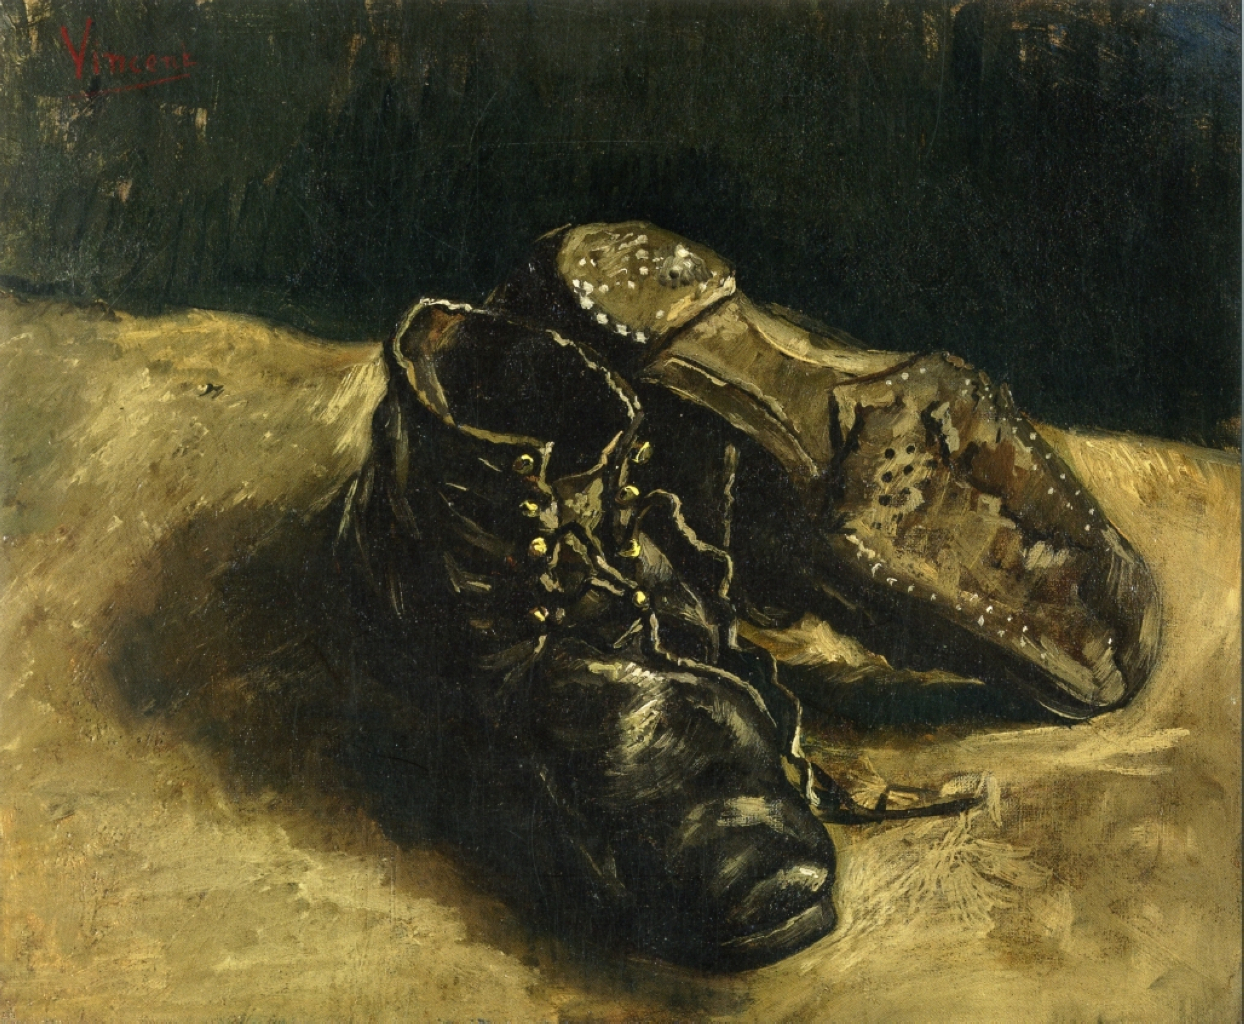 Van Gogh A Pair Of Shoes Wiki